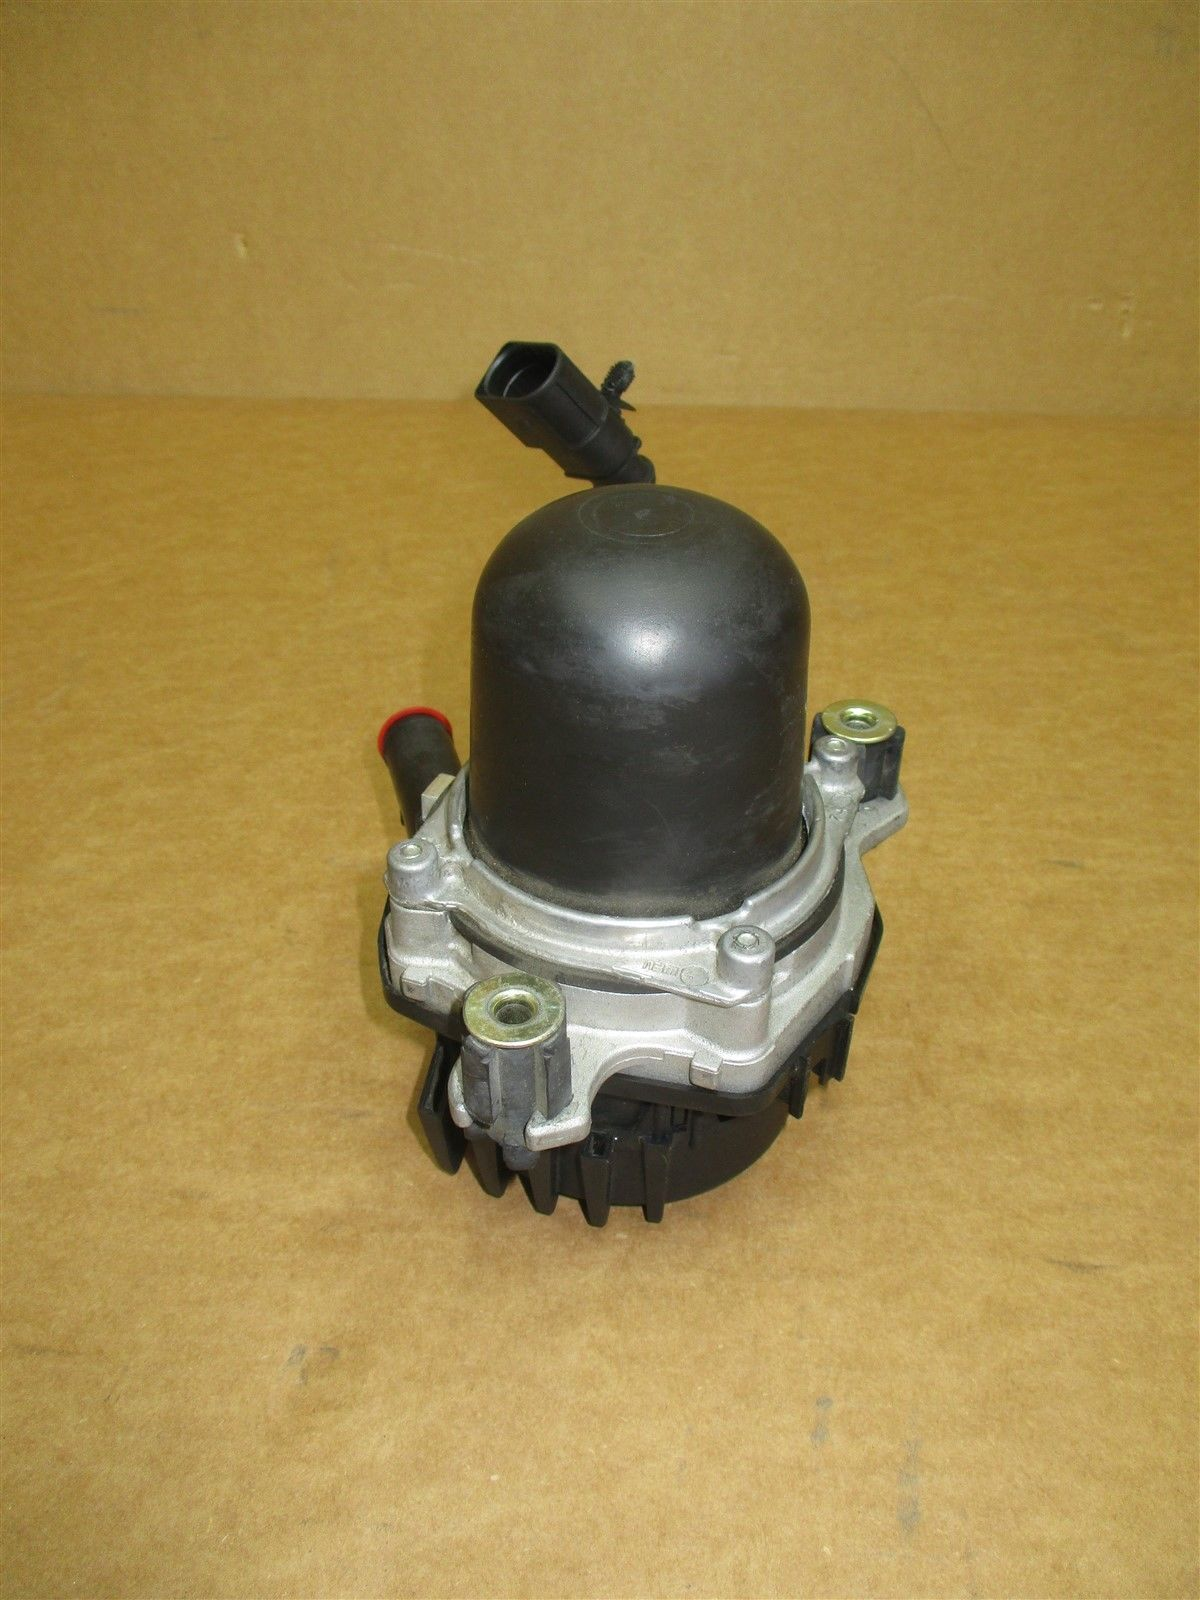 06 Cayenne S AWD Porsche 955 L Engine 4.5 SMOG AIR PUMP 7L5959253A 101,210